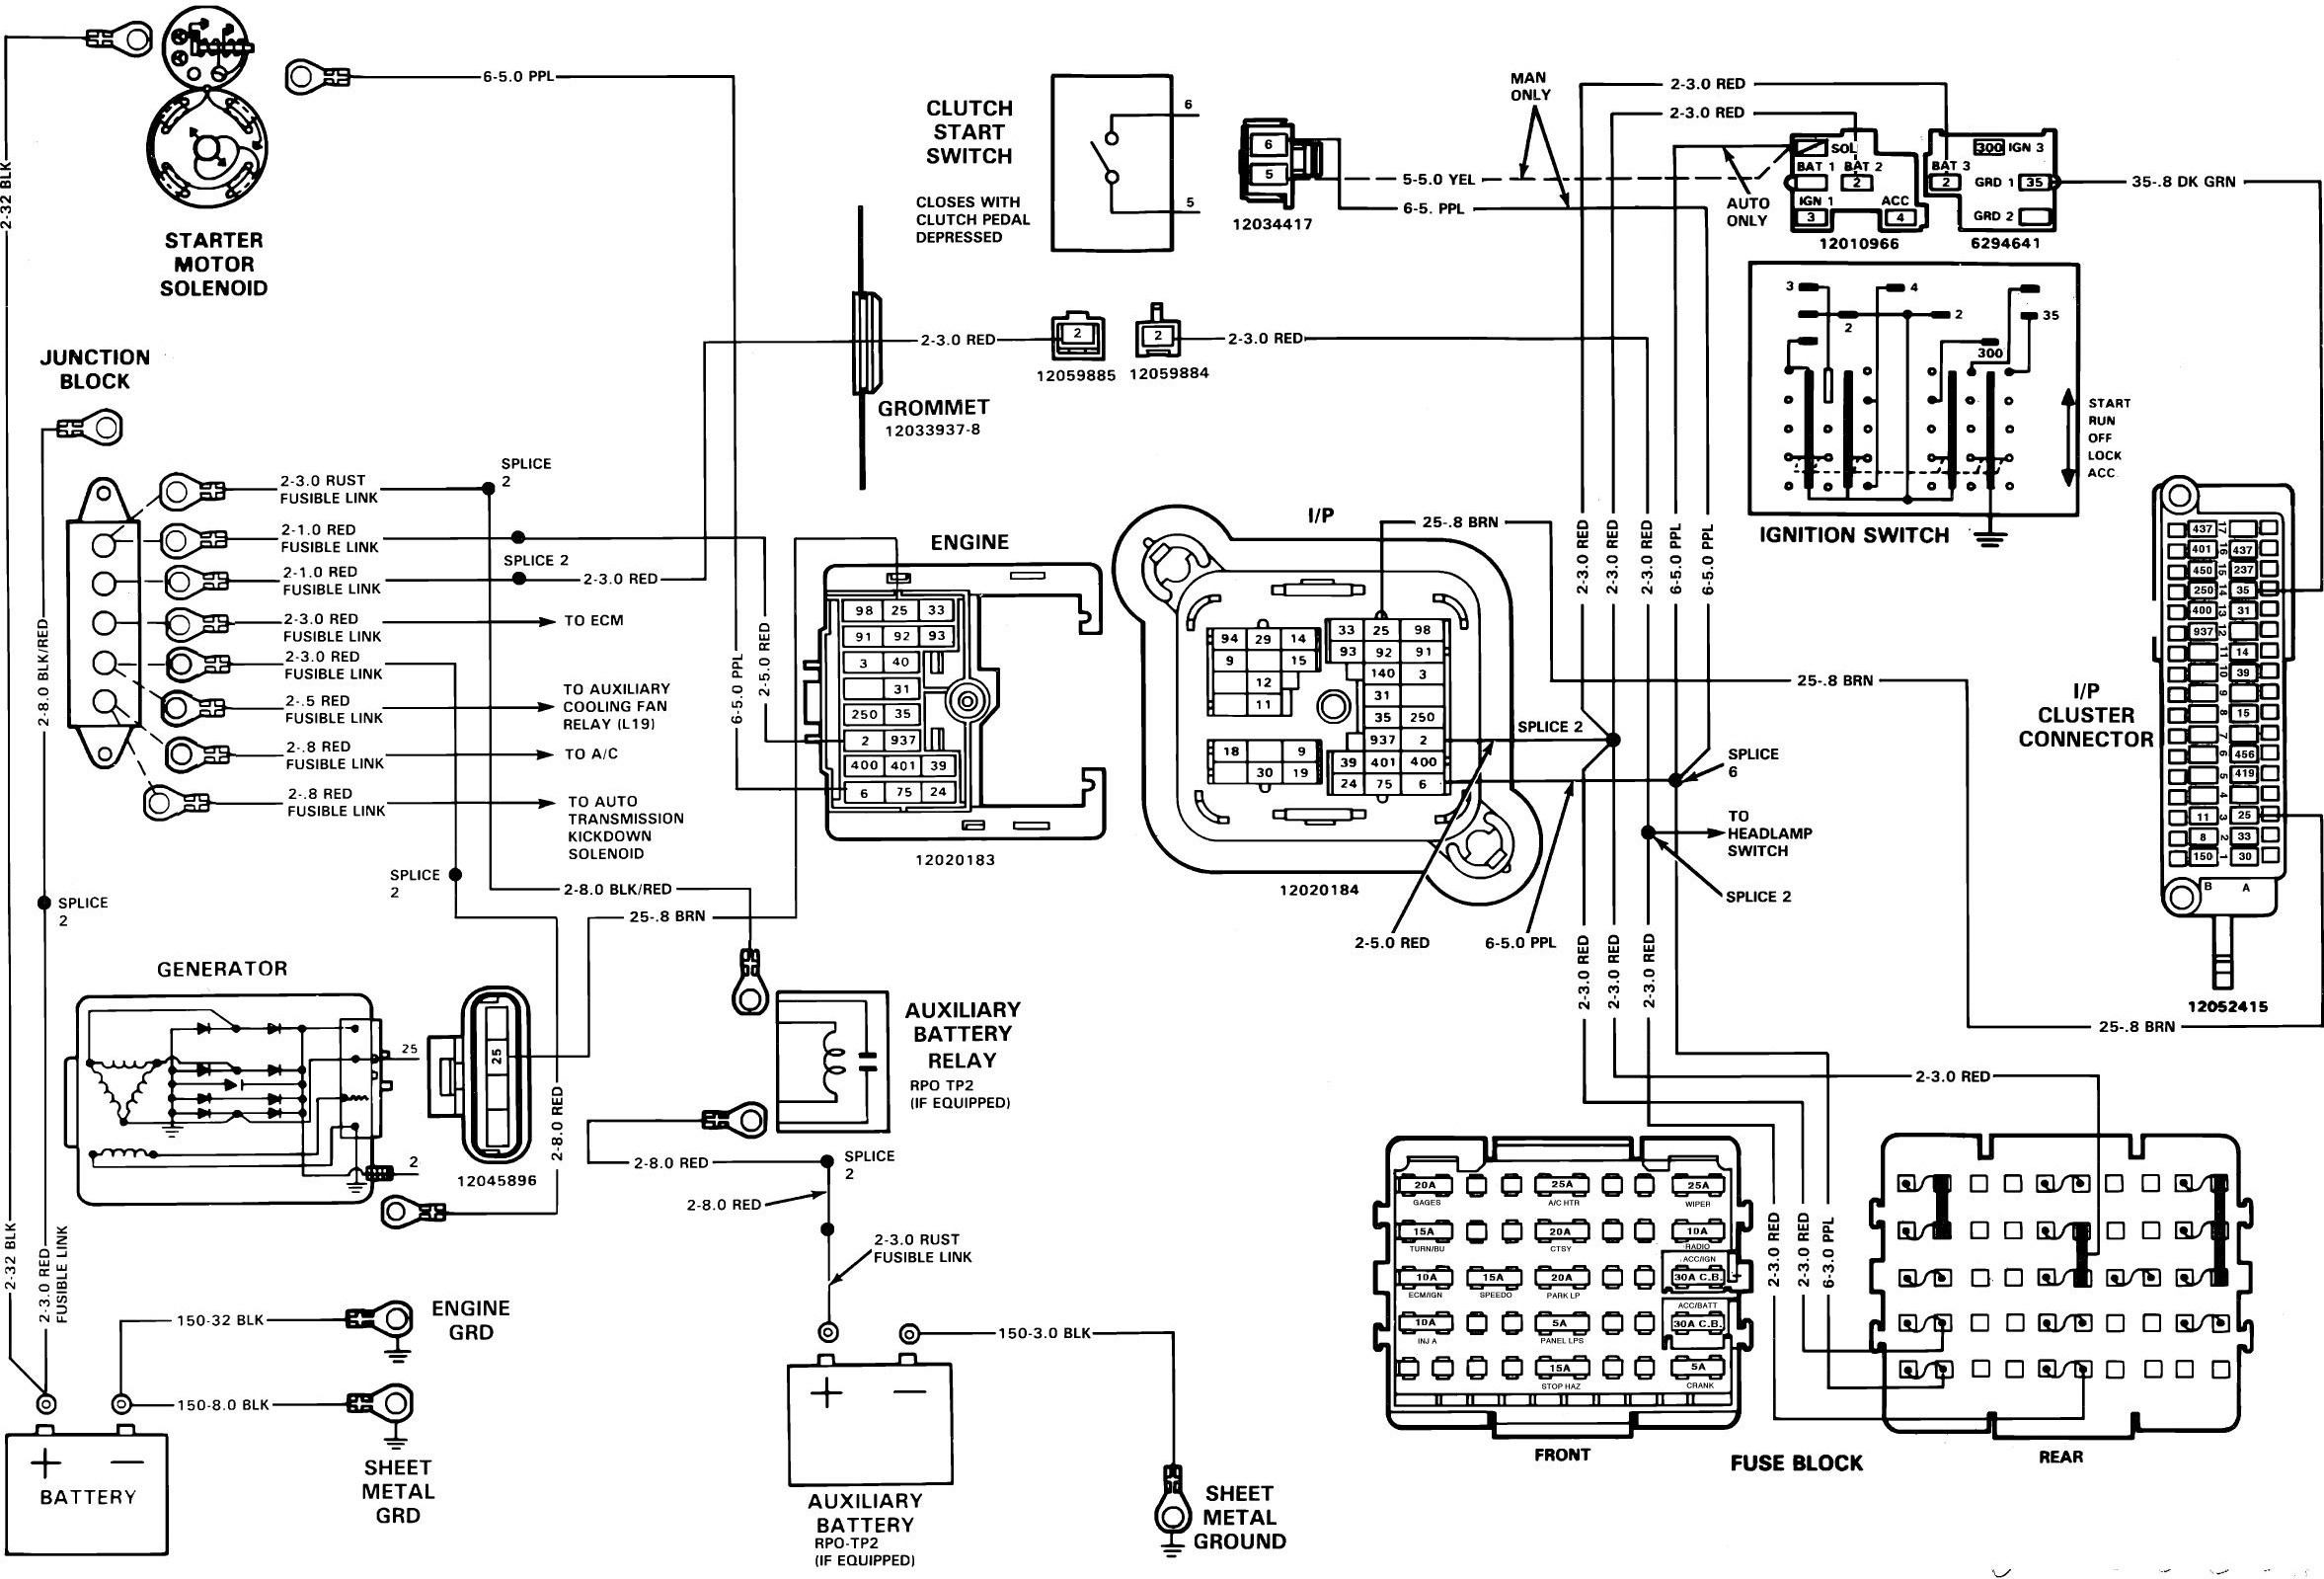 1998 Chevy 6500 Stereo Wiring Diagram • Wiring Diagram For